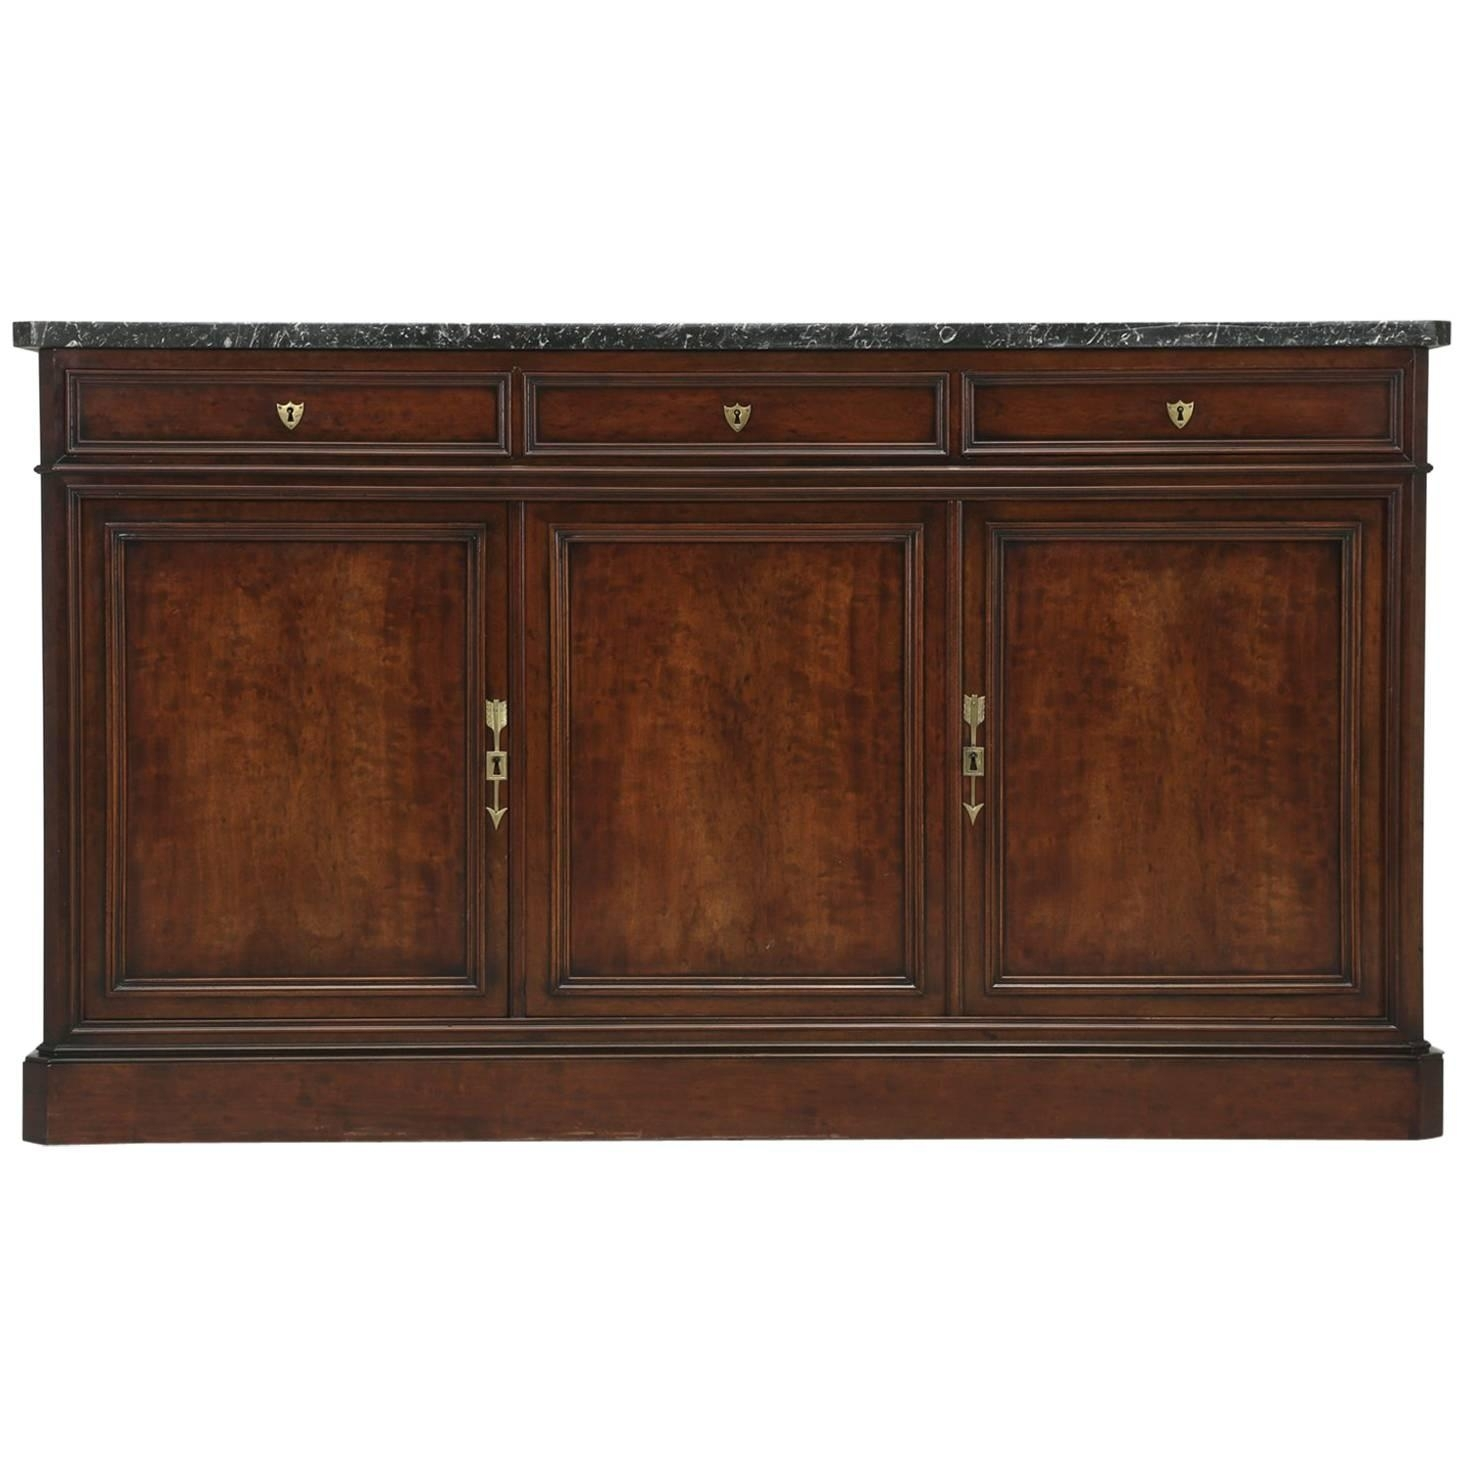 Antique Wood Sideboard With Parquet Top For Sale At 1Stdibs With Regard To 2017 Parquet Sideboards (#2 of 20)